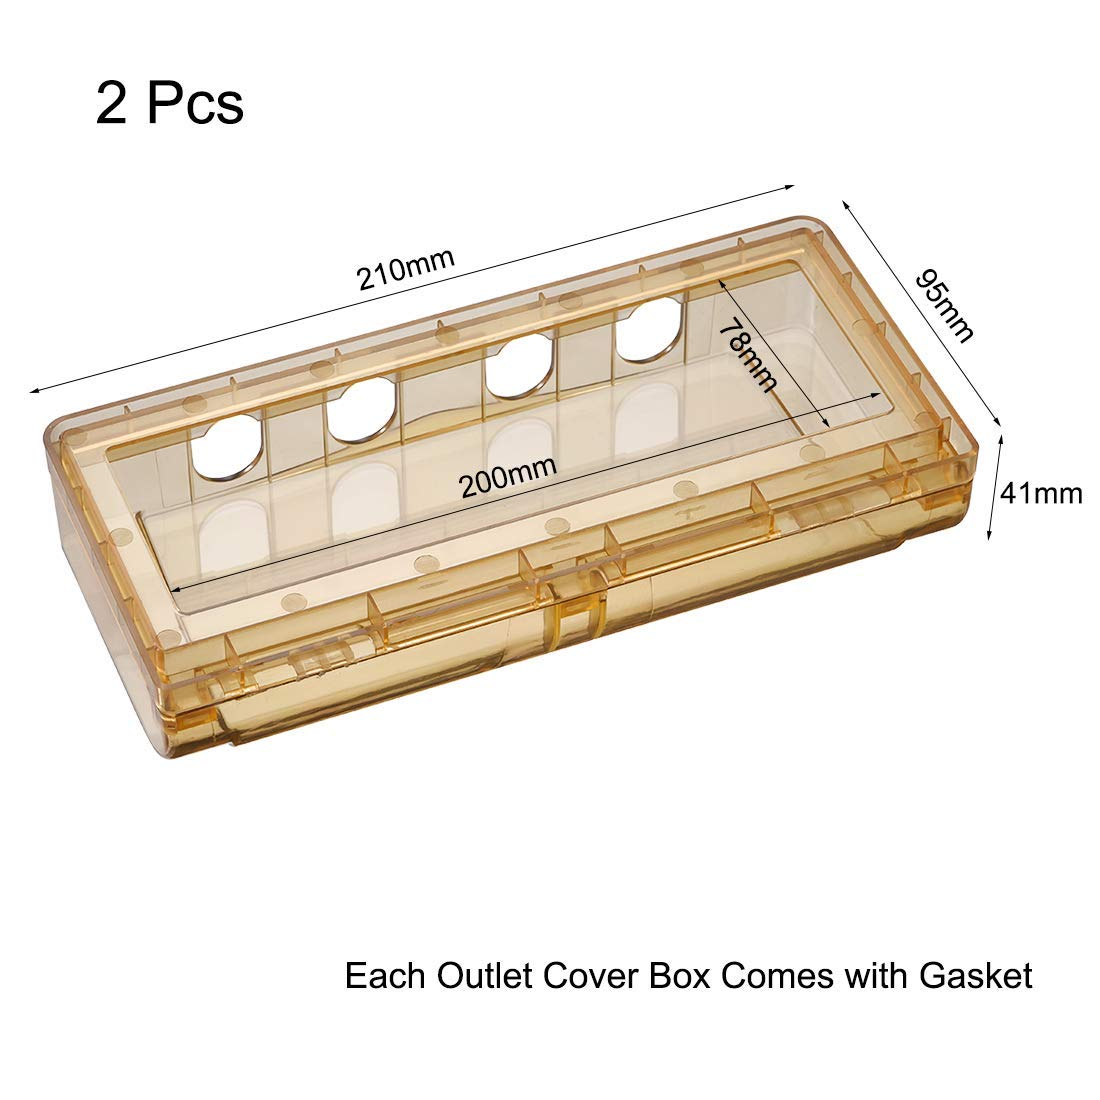 Weatherproof outlet cover Plug Receptacle protector in use Indoor use 210x95x41mm Tawny 2Pcs